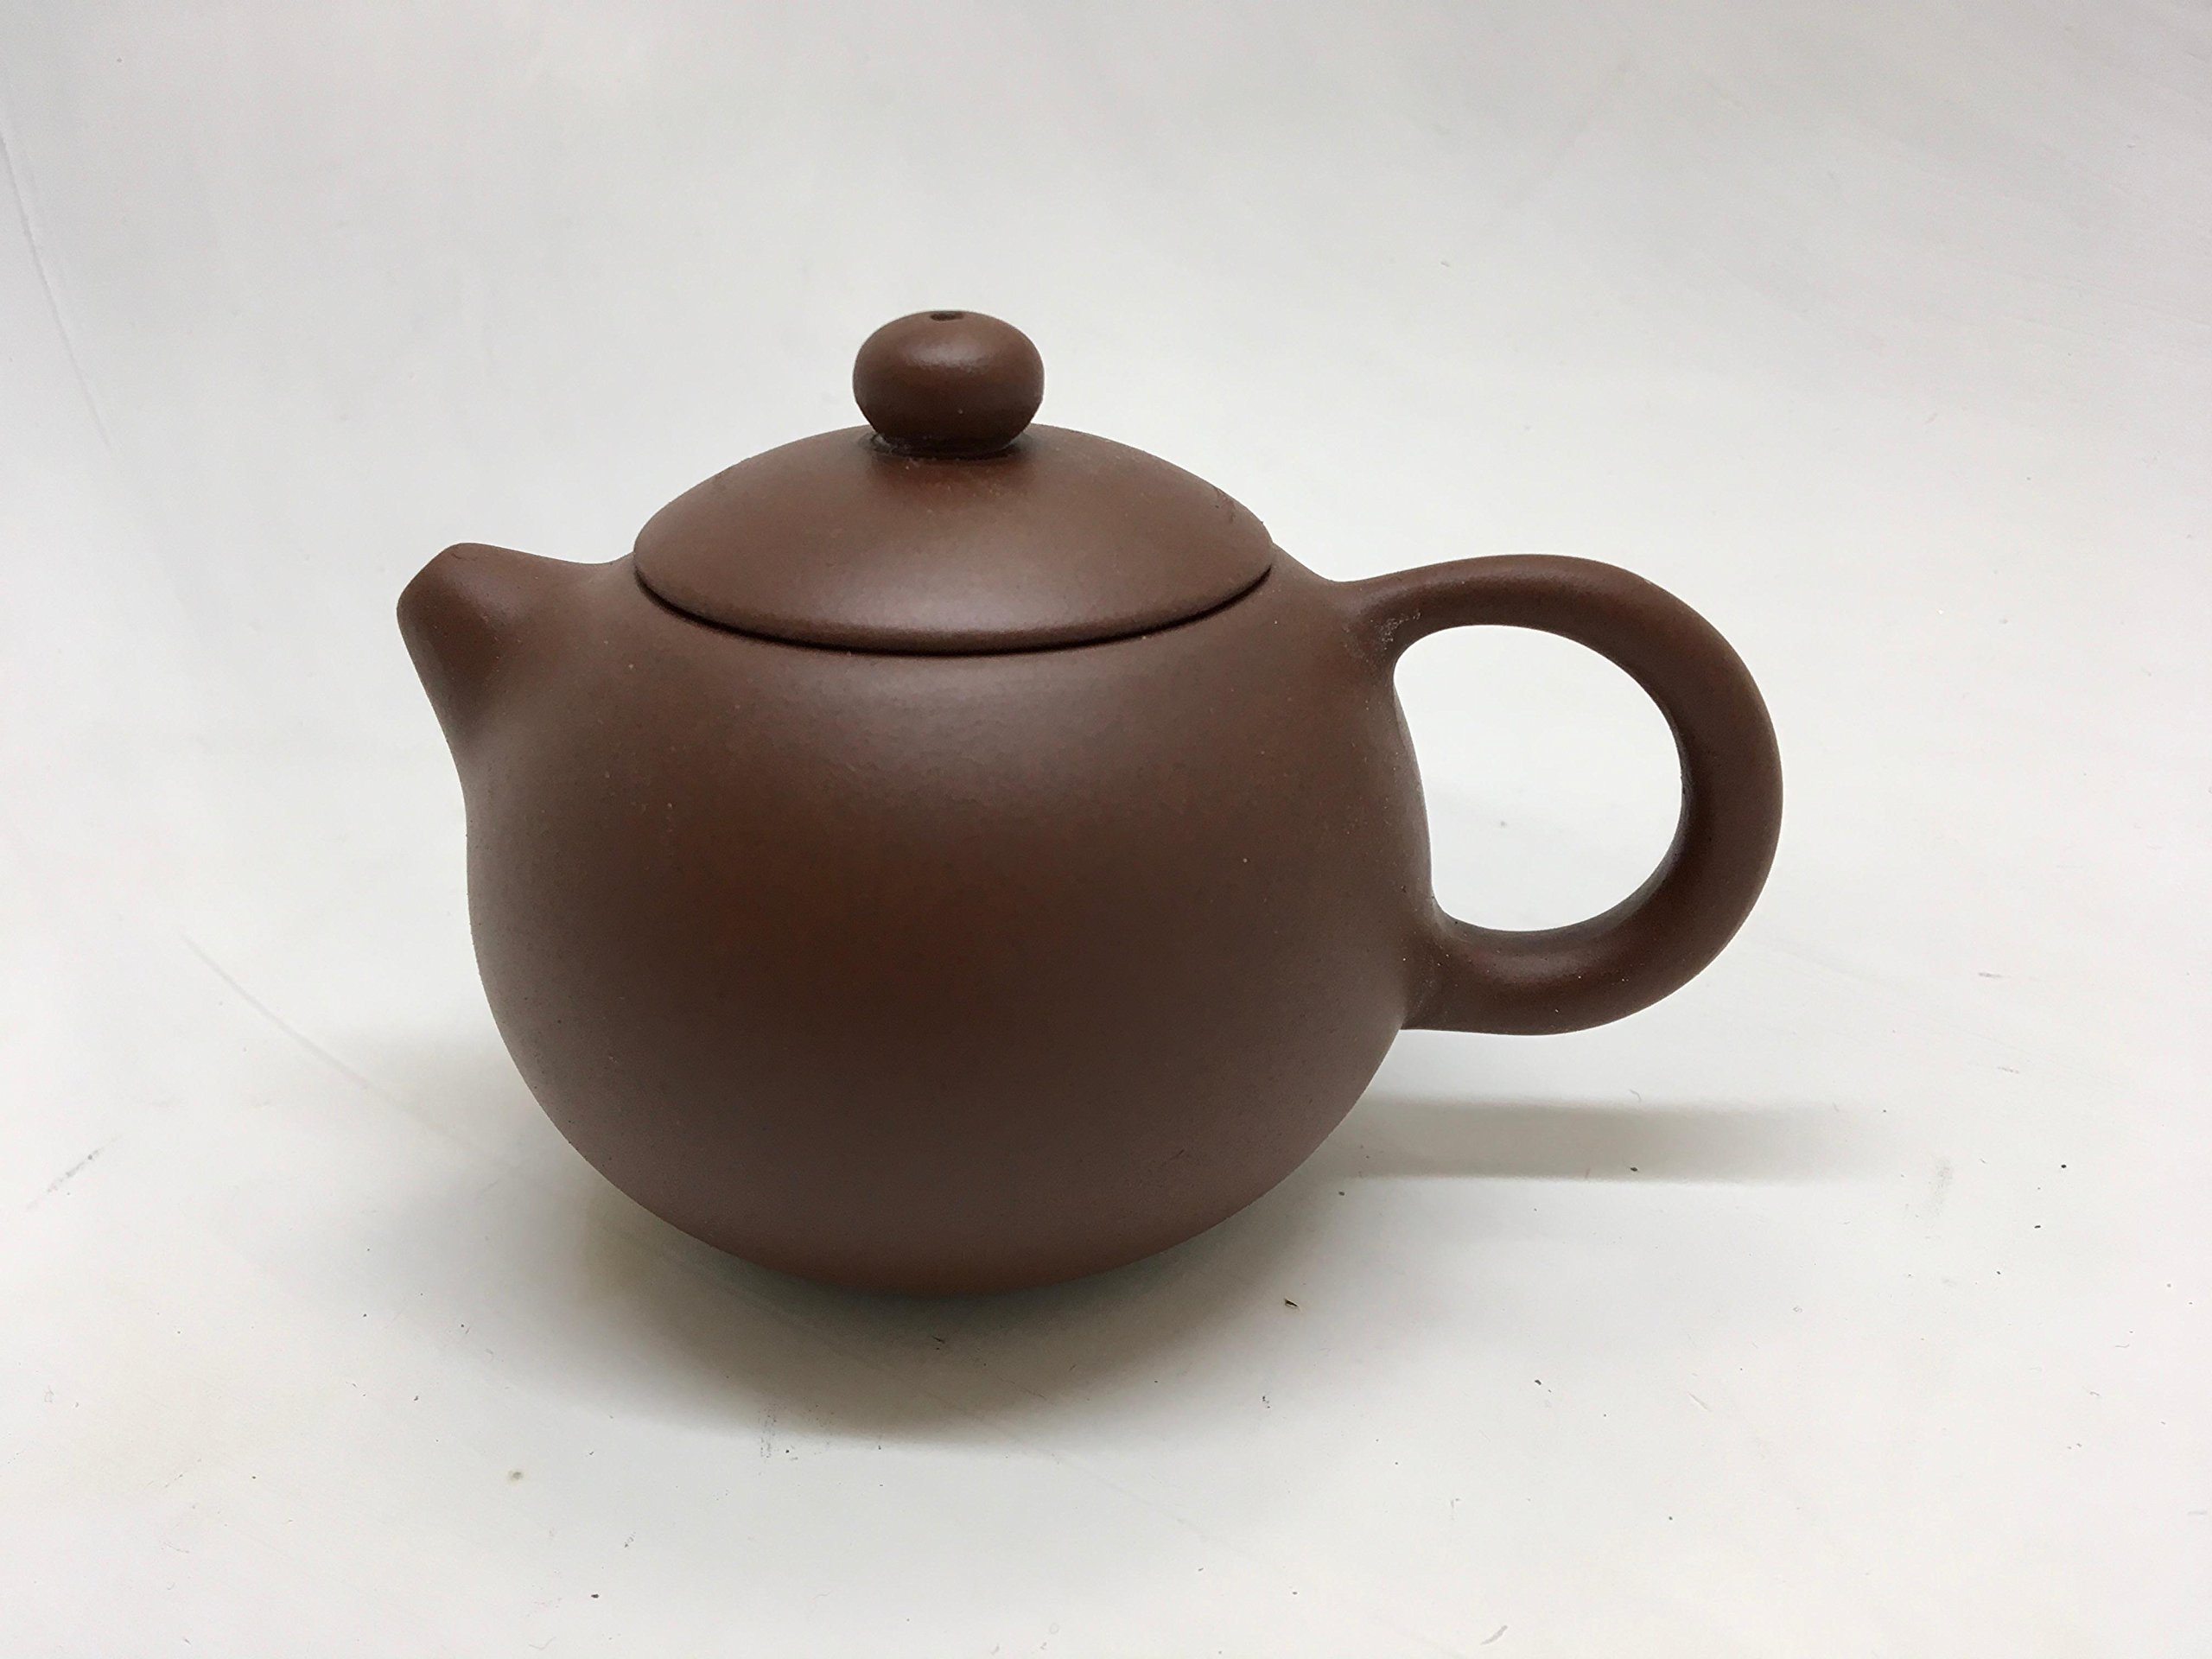 Yixing Tea Pot with 6oz Capacity Highly Recommended (Brown 6oz #4) by Music City Tea